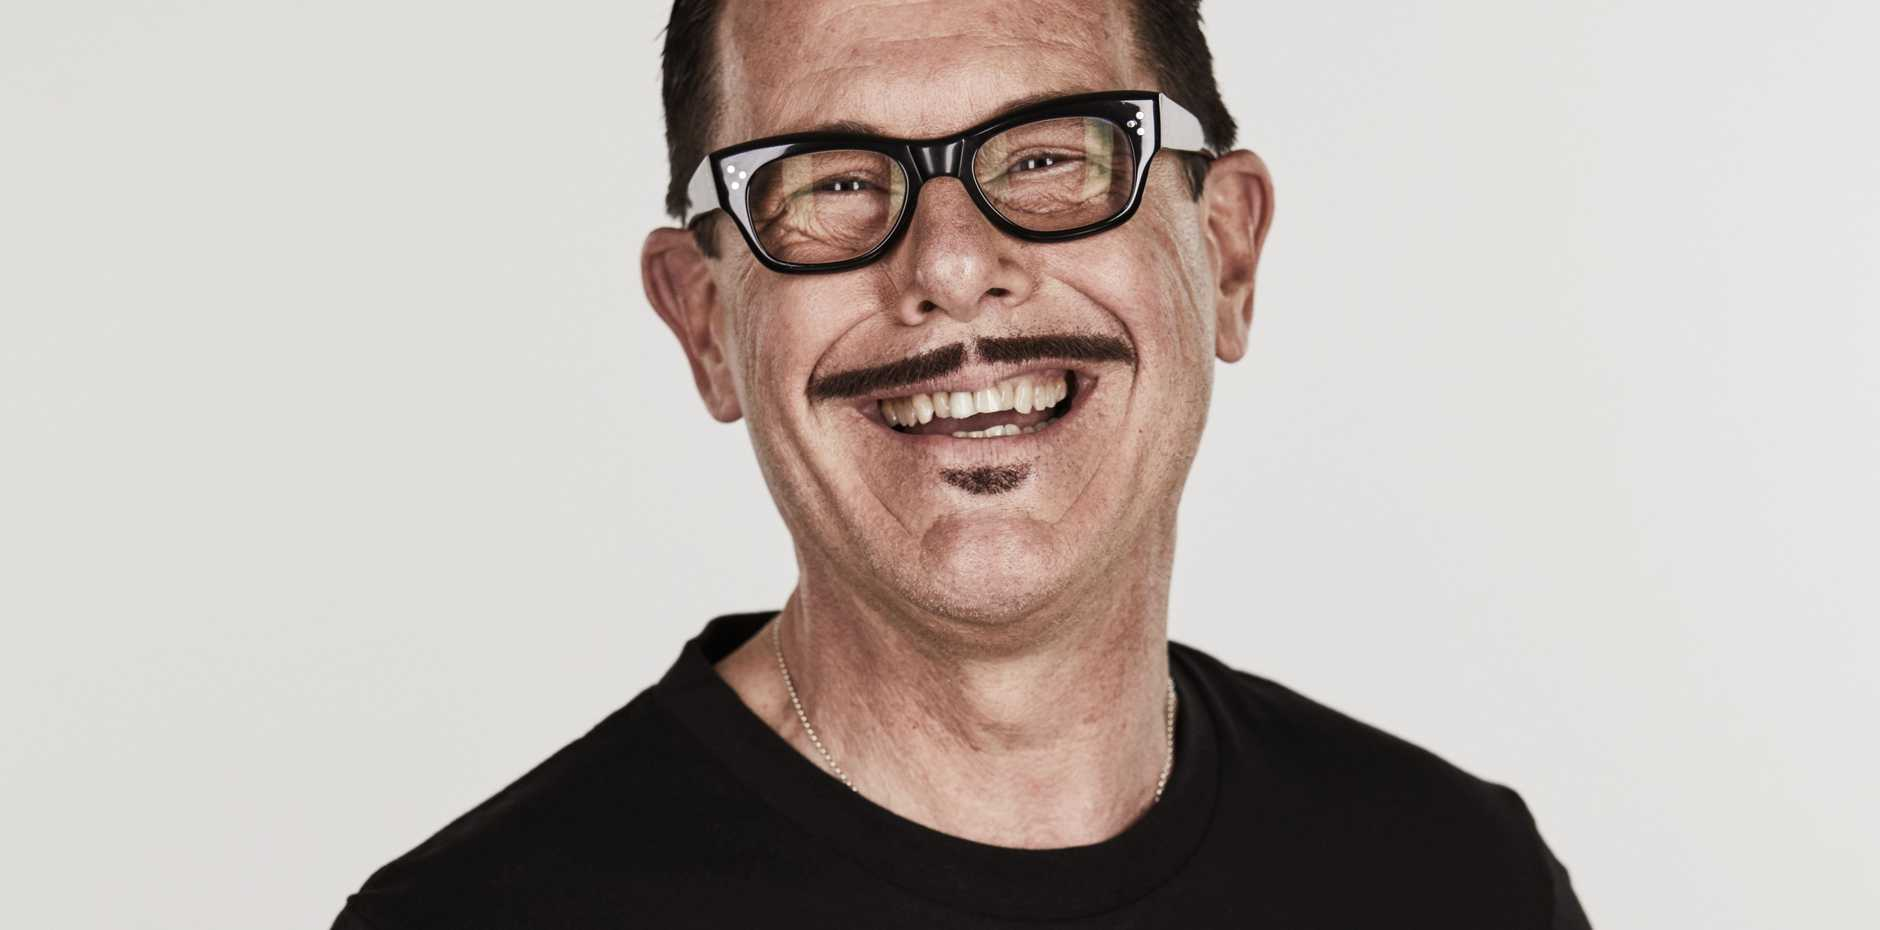 MEN'S HEALTH: Movember ambassador, INXS musician and prostate cancer survivor Kirk Pengilly was Australian men to starting talking to each other, and those can support them.